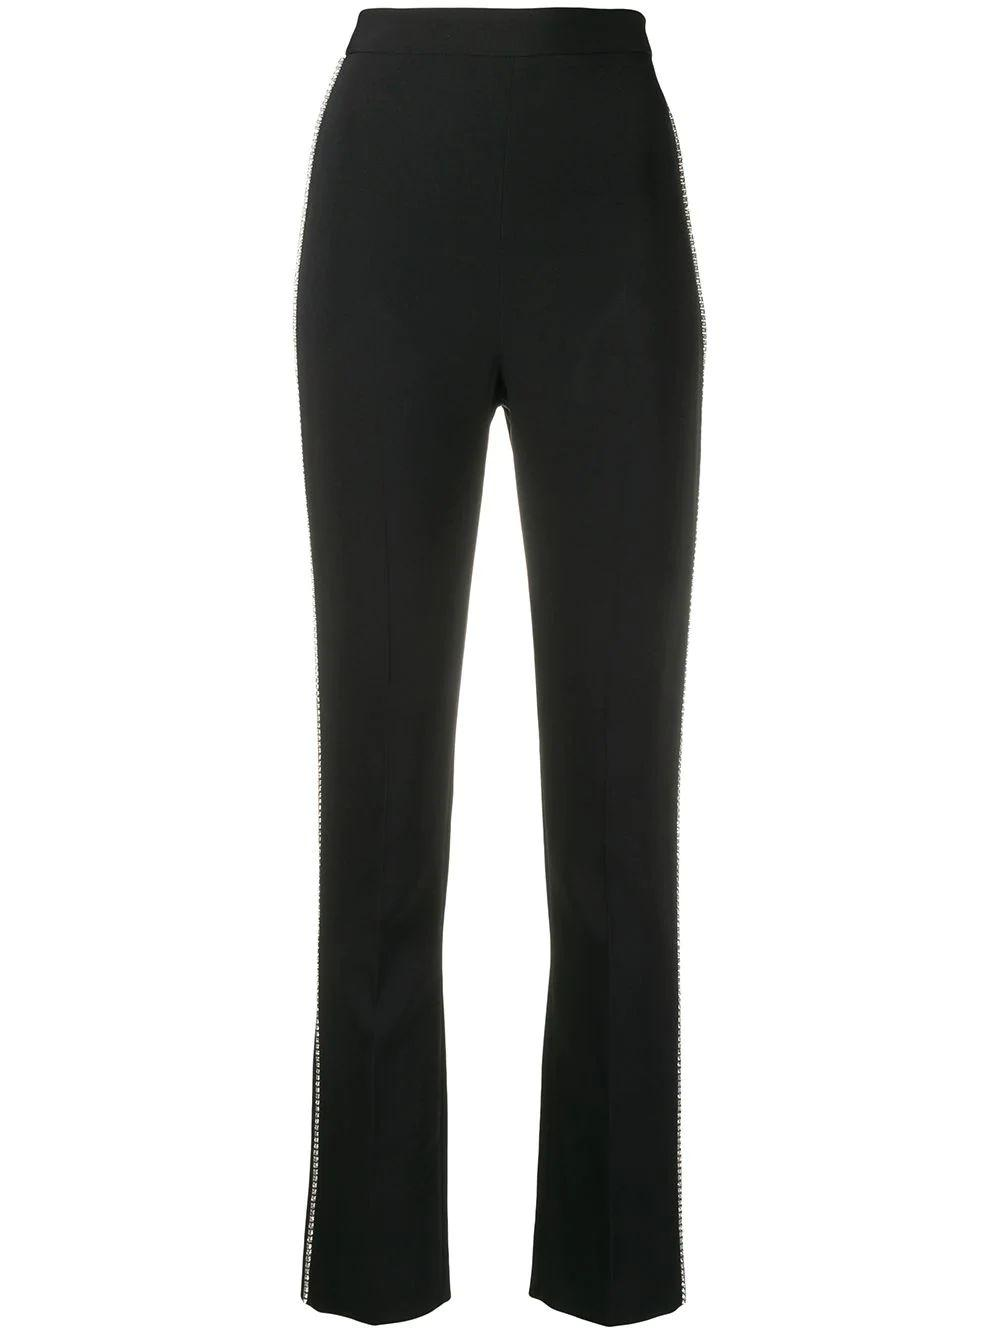 Crystal Chain Side Embellished Slim Leg Trouser